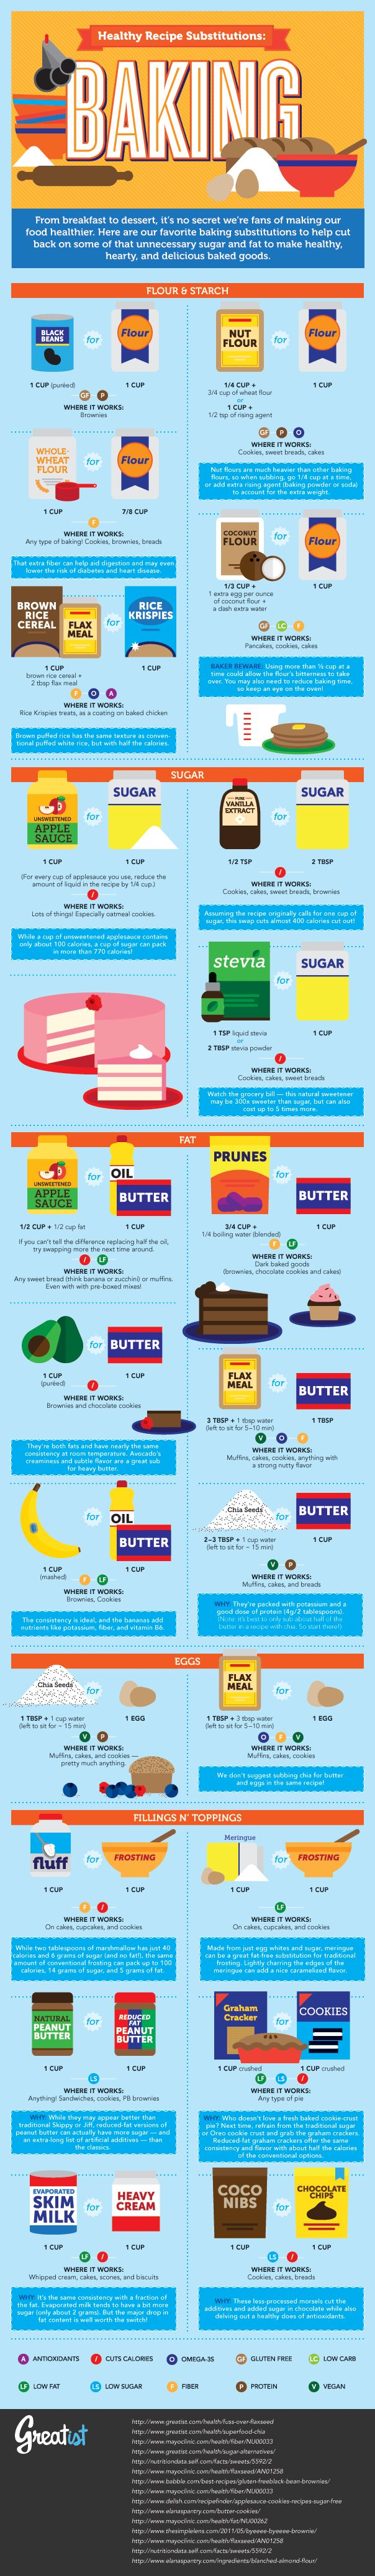 Healthy Baking Substitutes FREE Printable! Great source for eliminating sugars and bad fats.